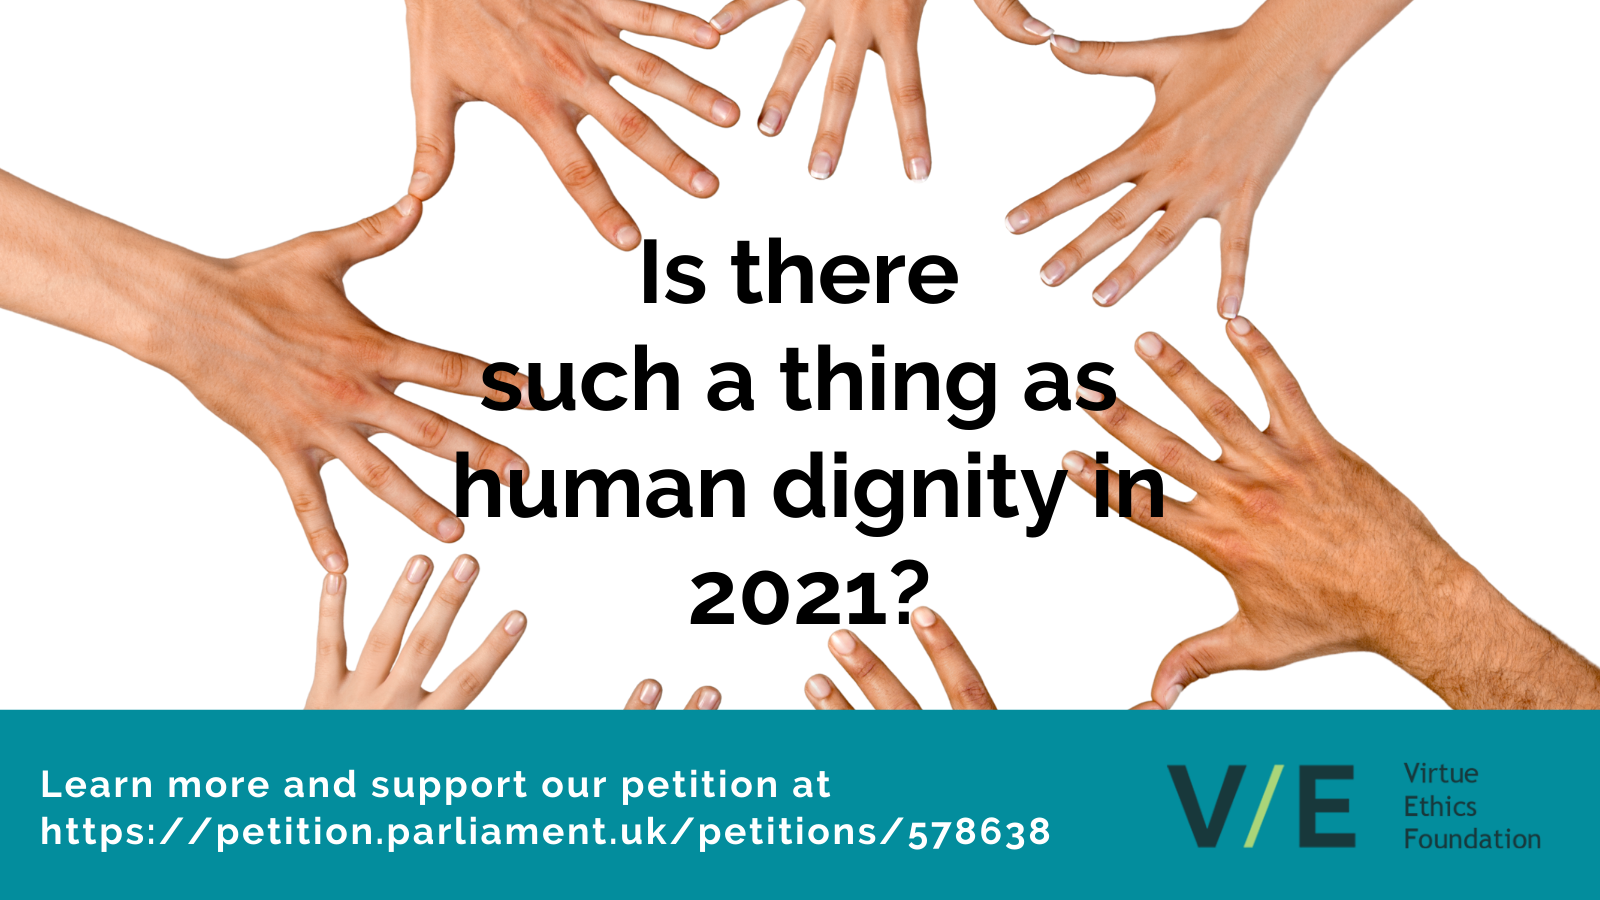 Is there such a thing as human dignity in 2021?